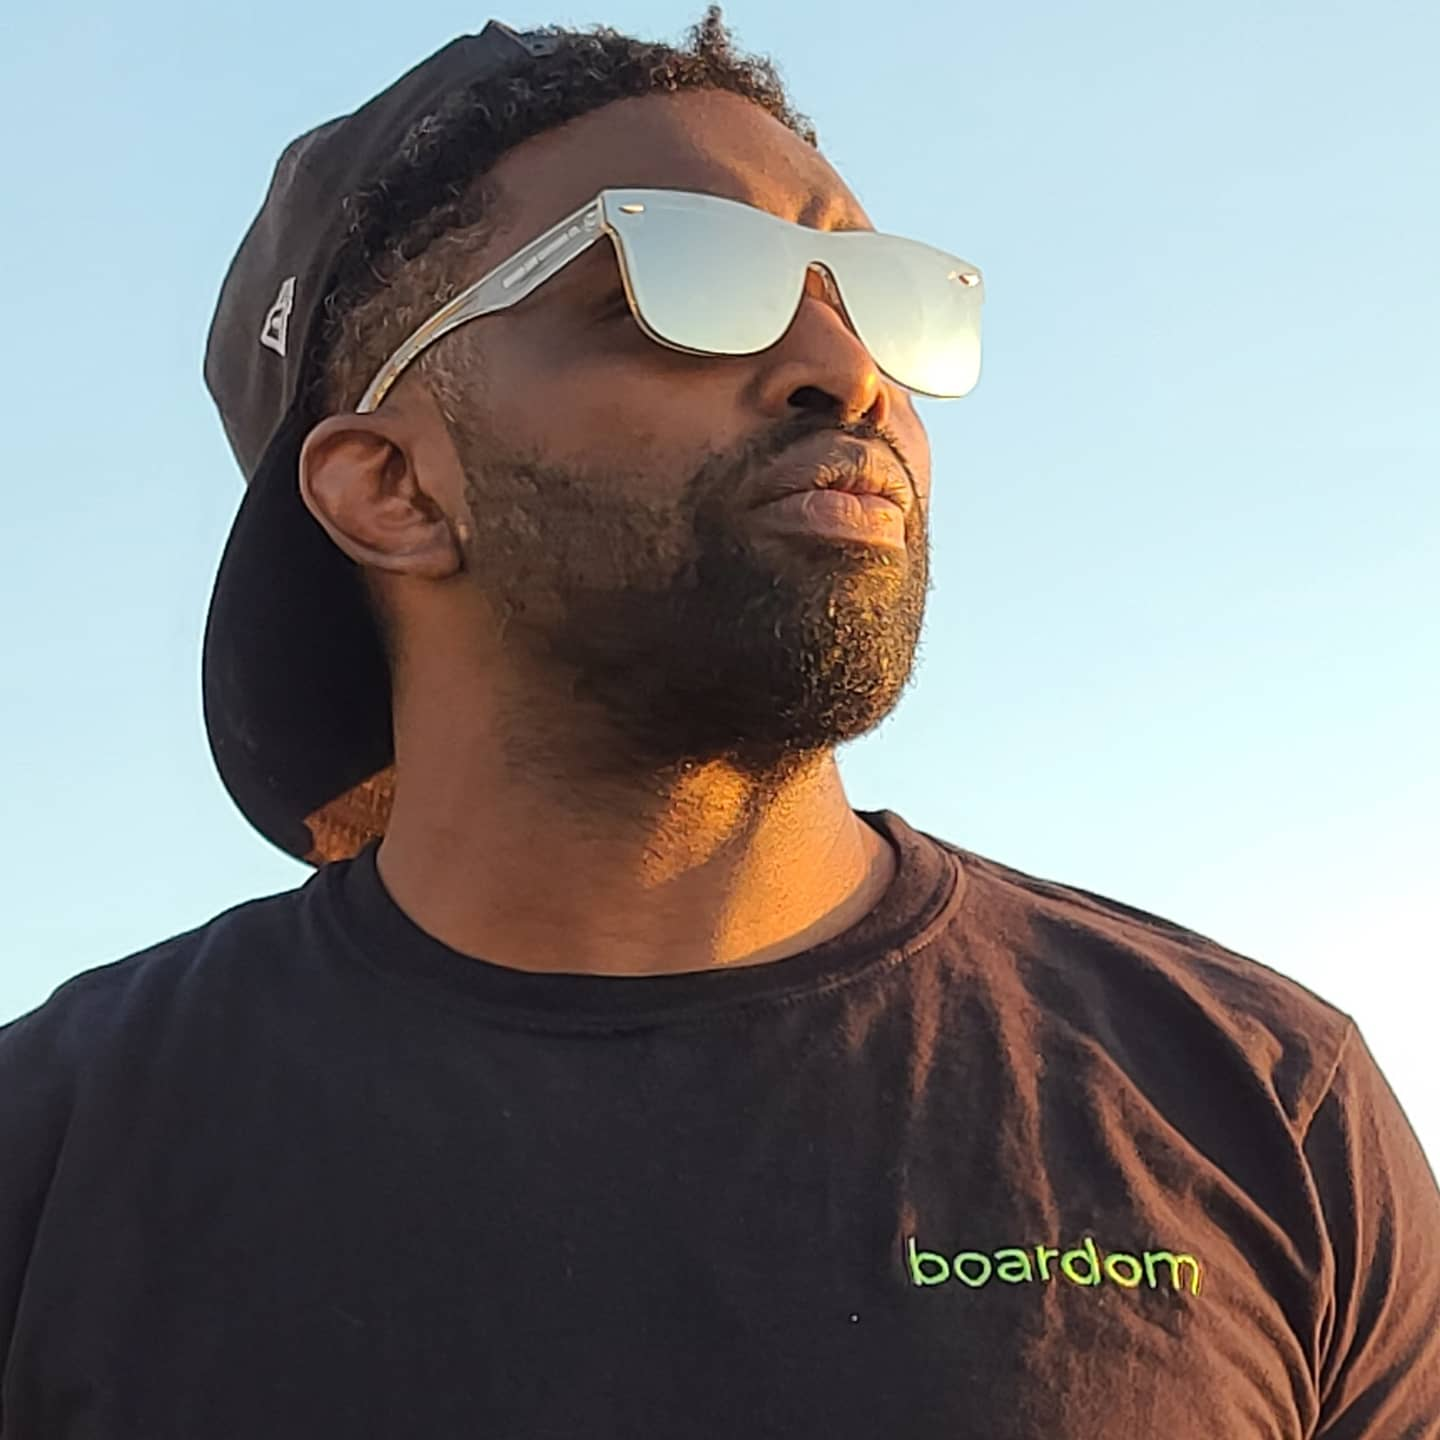 Board Life Sunglasses